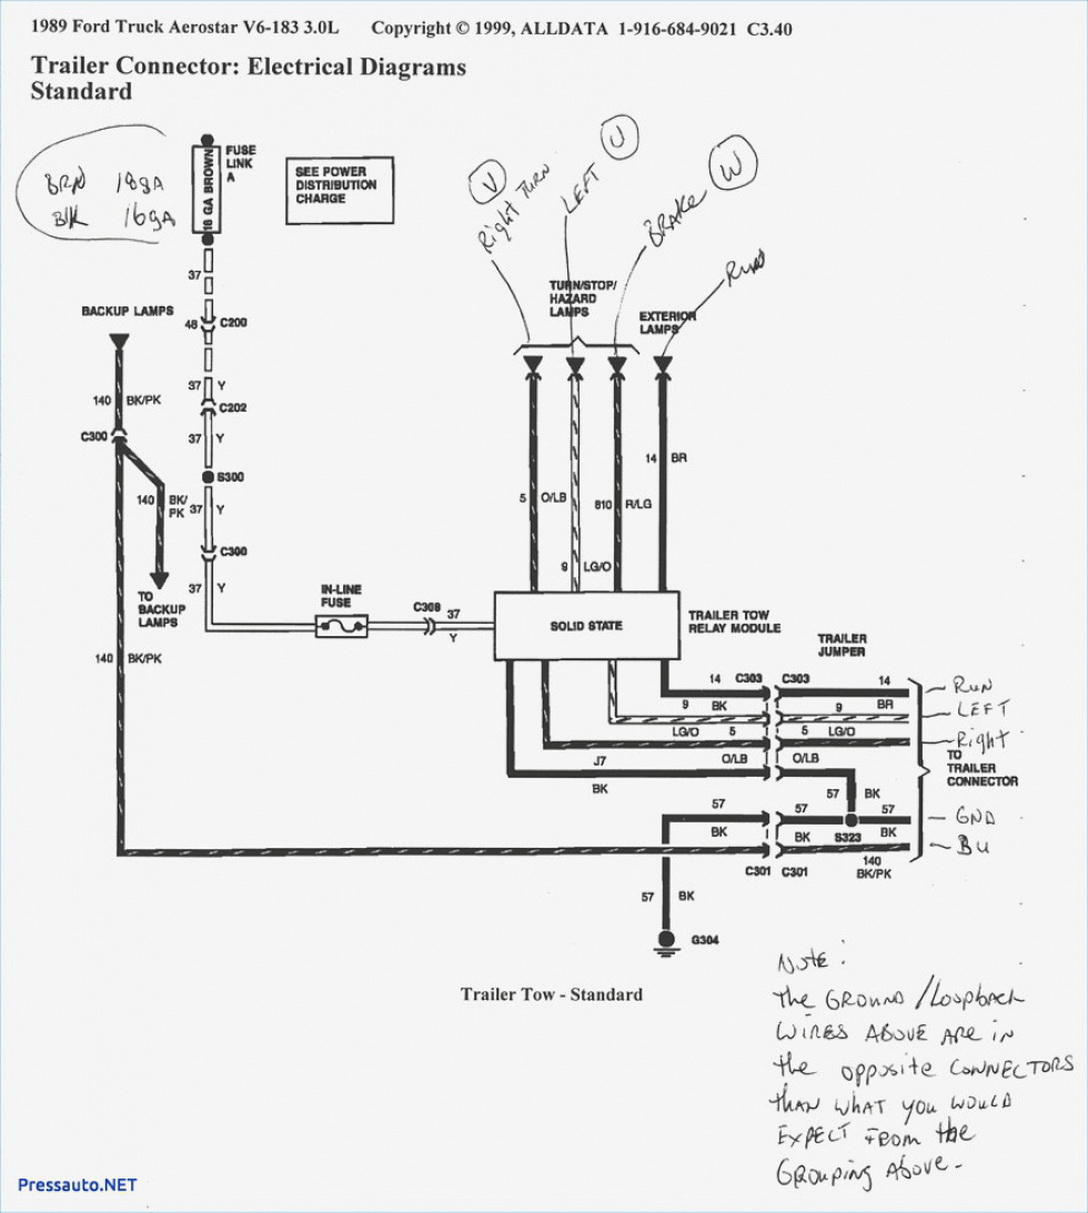 Ford Ranger Trailer Wiring Harness Diagram | Otomobilestan - Trailer Wiring Diagram Ford